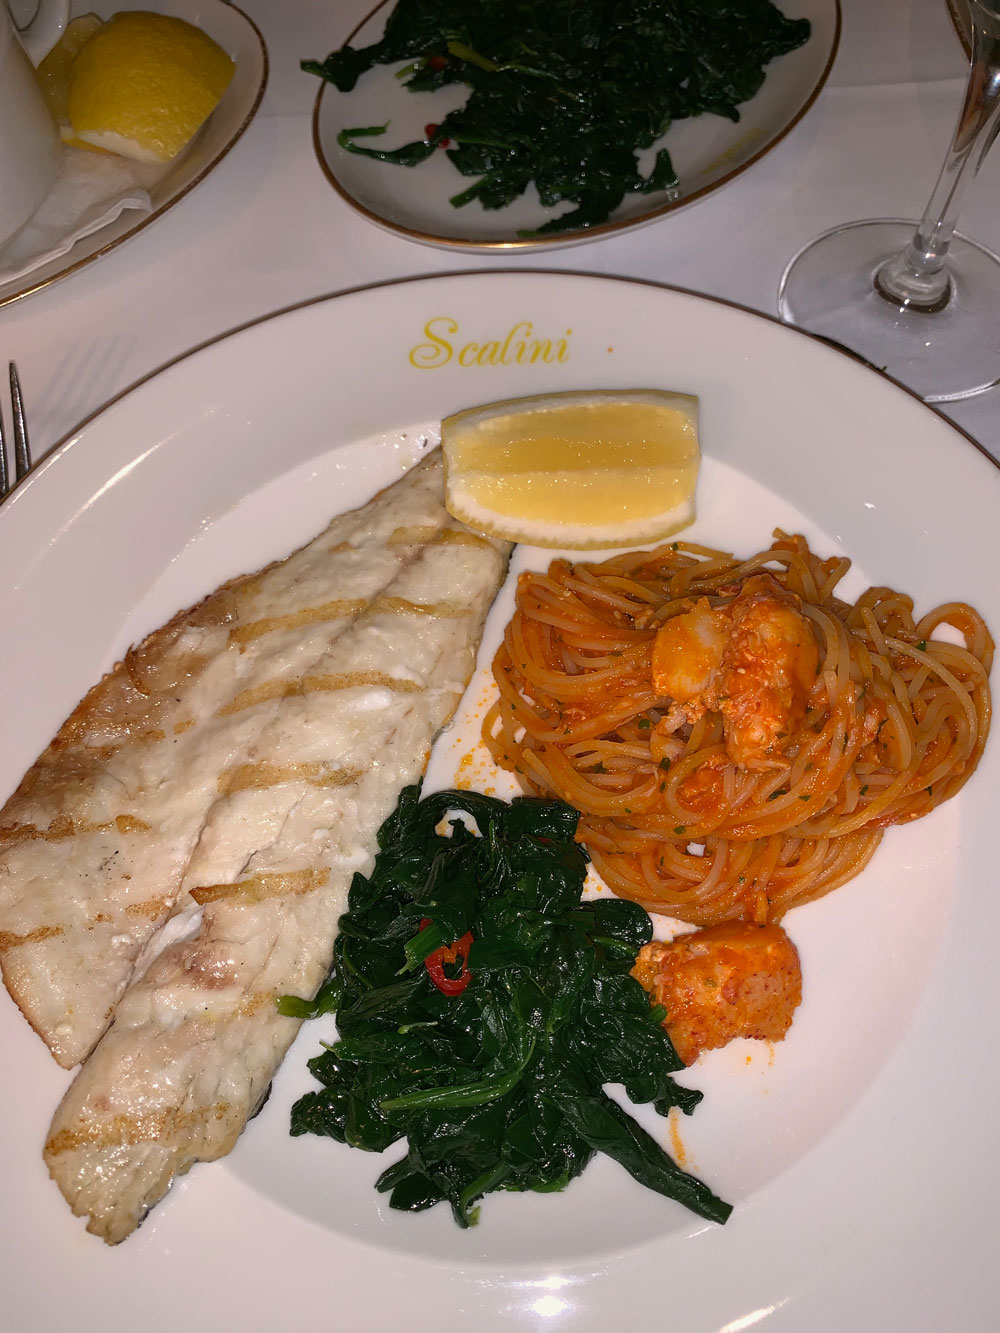 scalini, dubai, restaurant, travel, fish, seabags, spinach, lobster, spaghetti, pasta